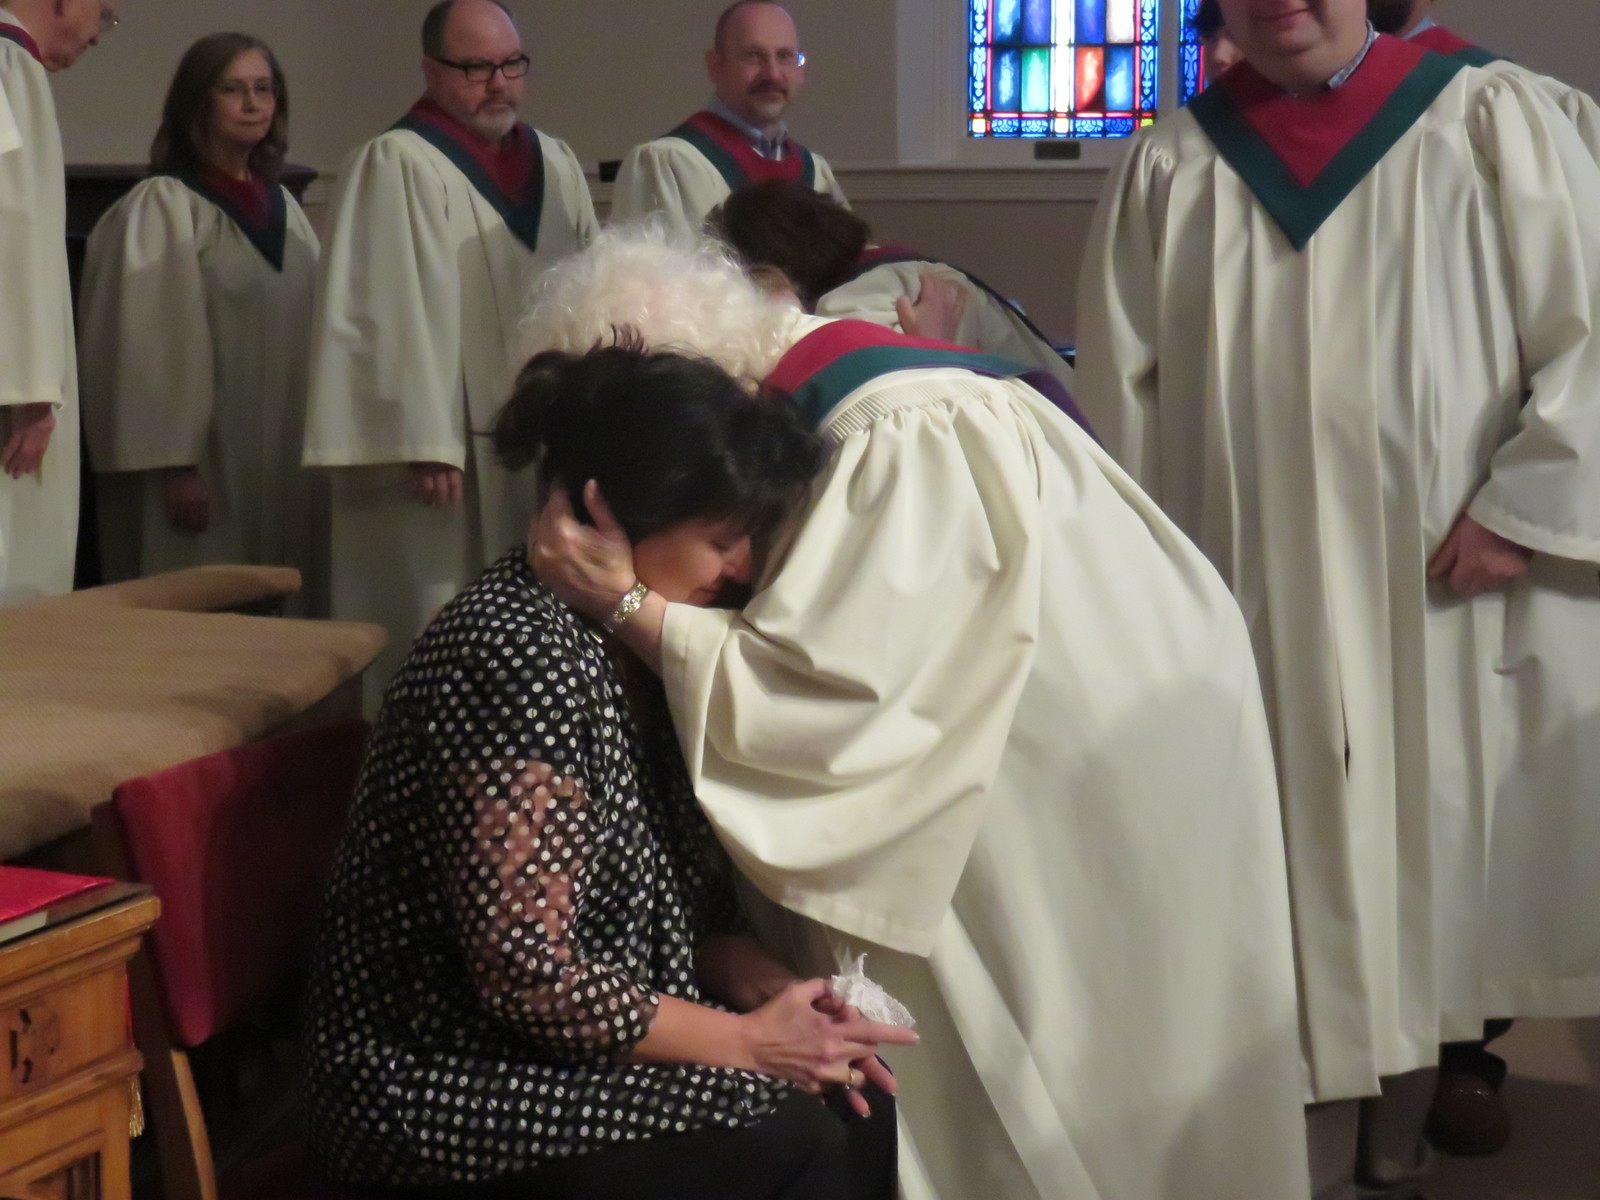 Deacon ordination.jpg